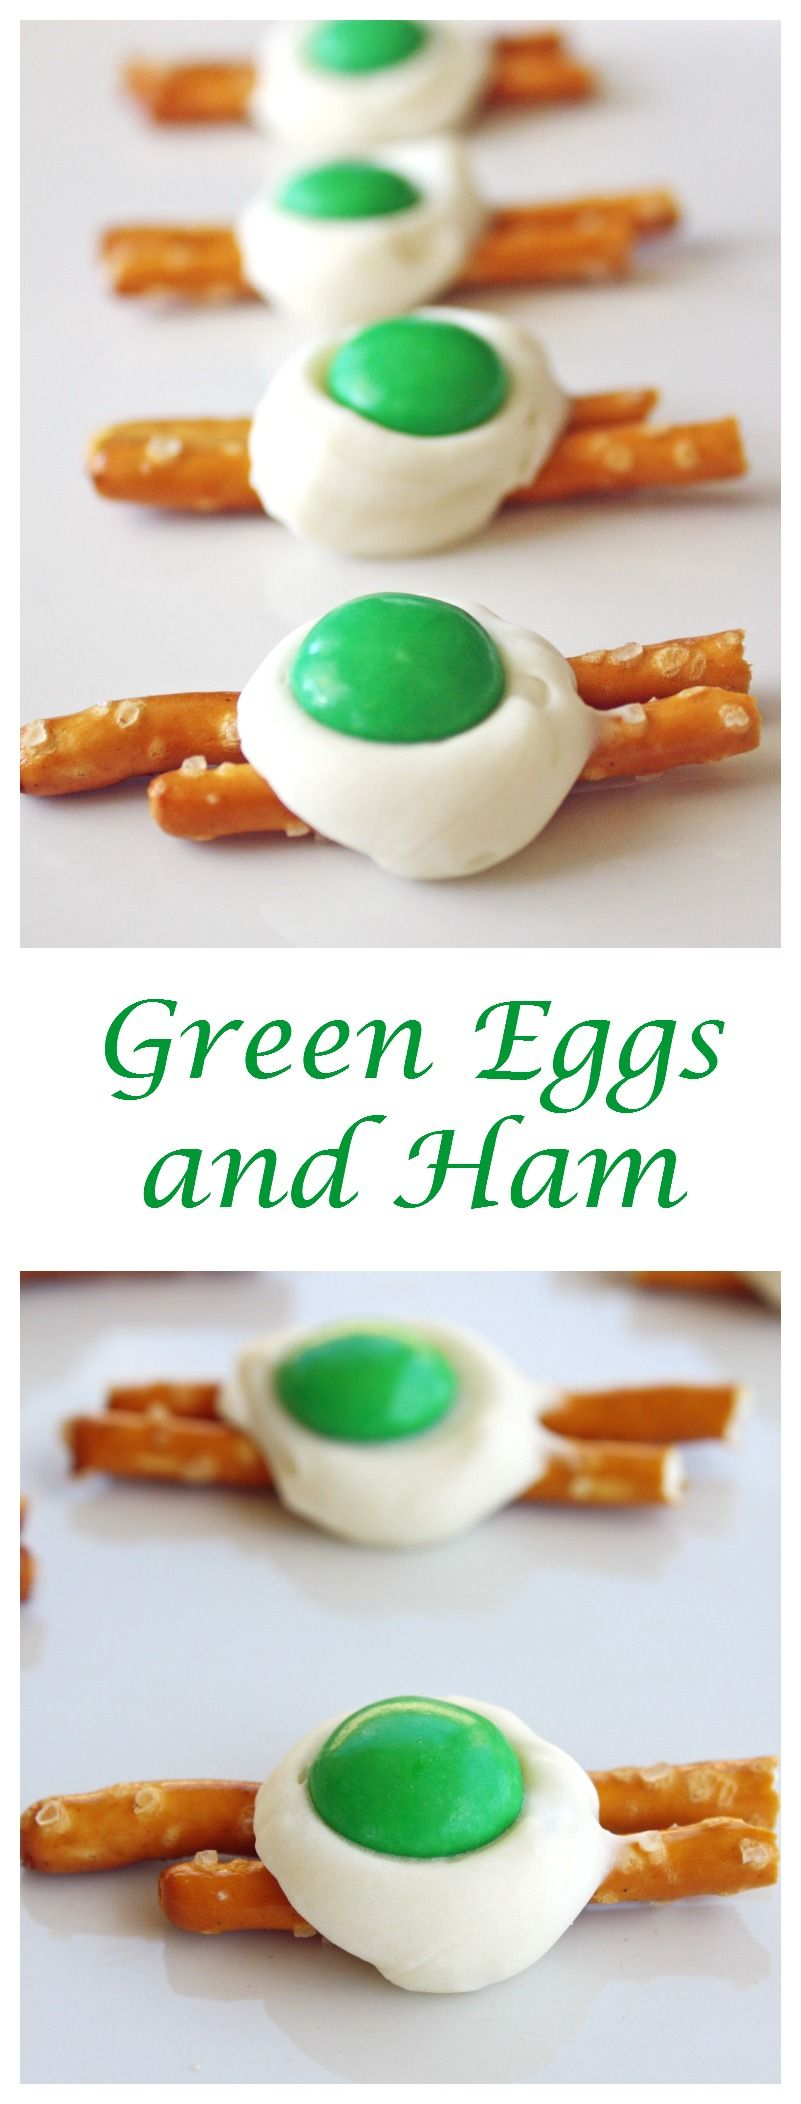 Green Eggs and Ham Pretzels - The Girl Who Ate Everything